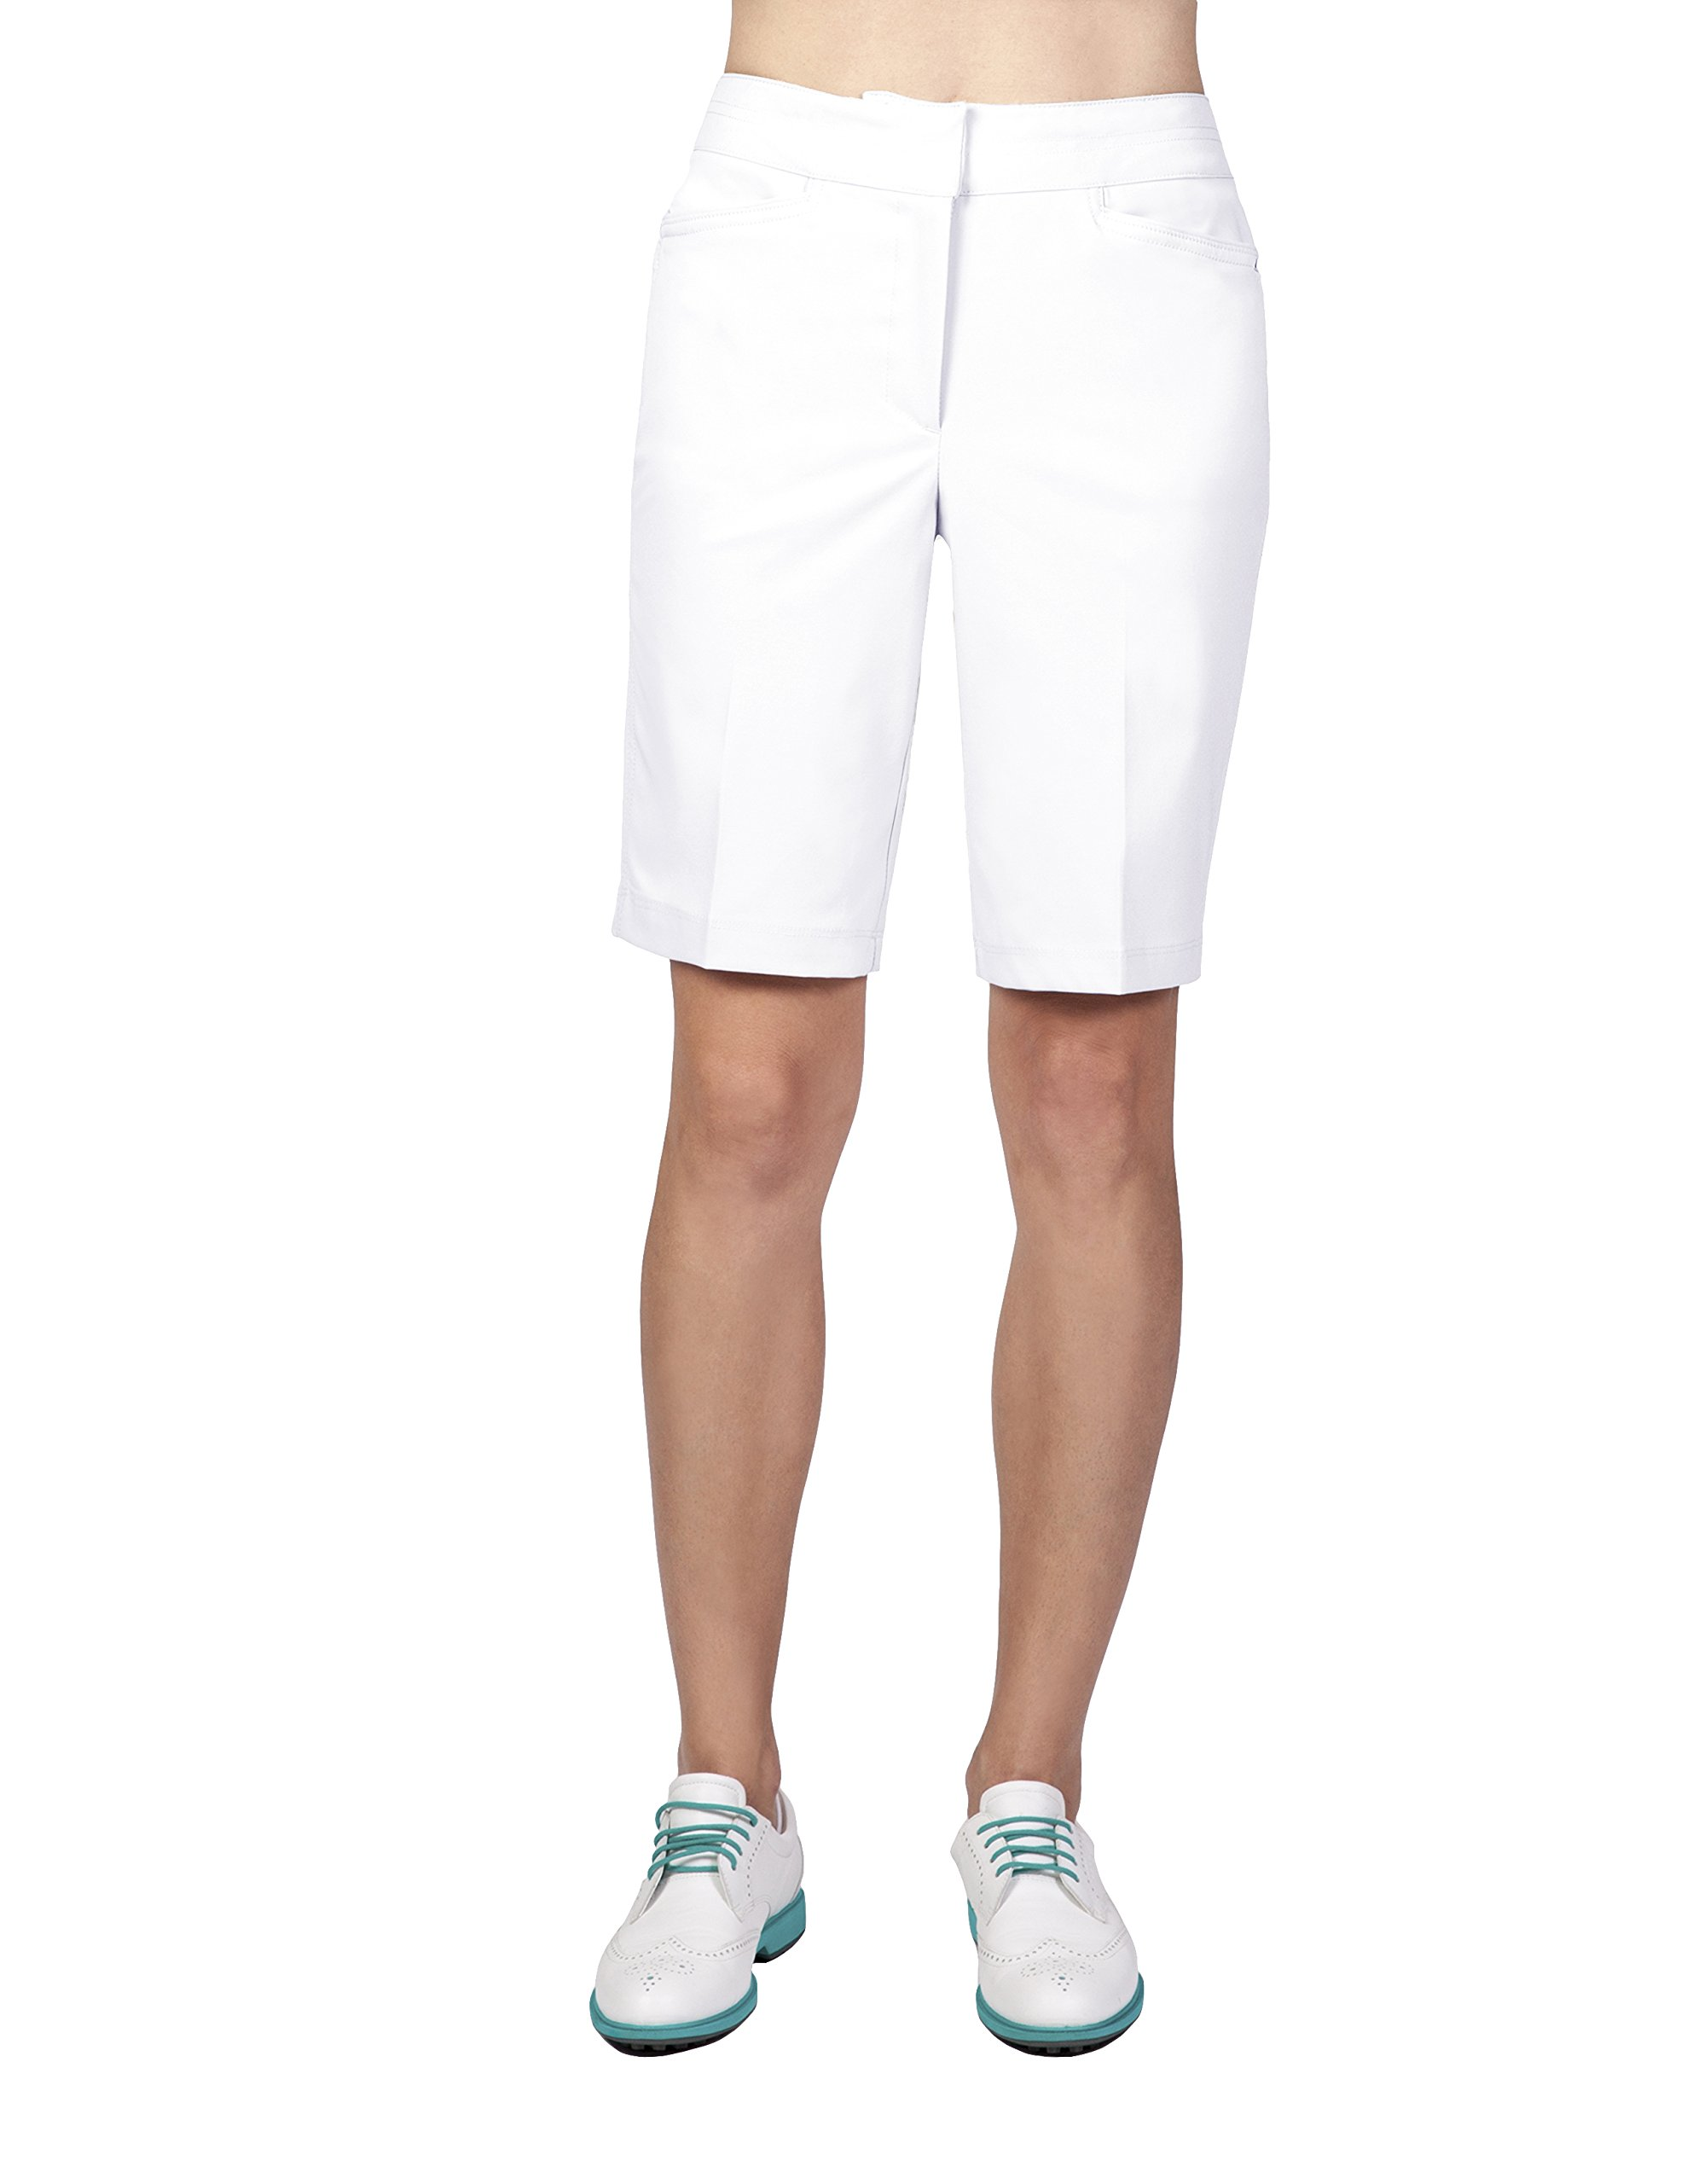 Tail Activewear Classic Short 14 White by Tail Activewear